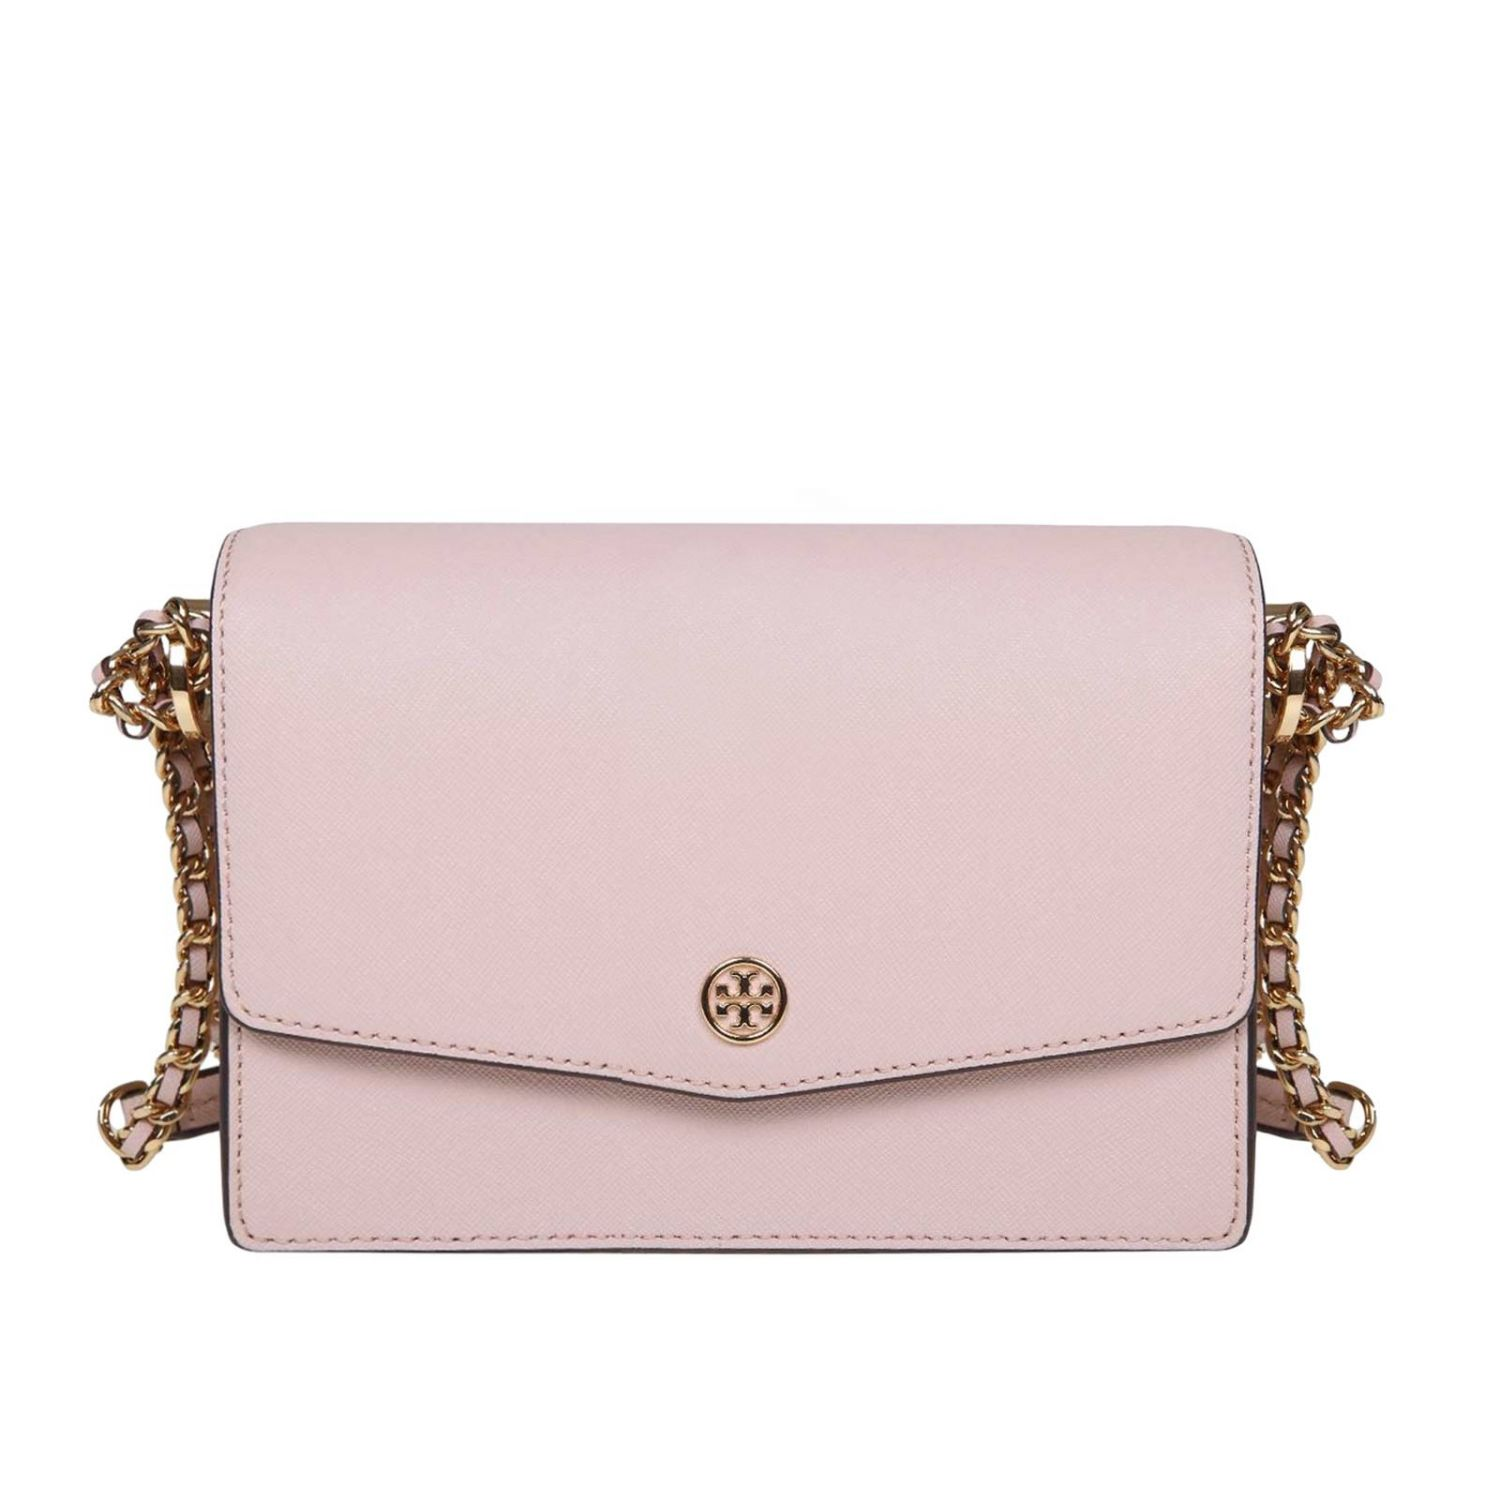 TORY BURCH | Crossbody Bags Crossbody Bags Women Tory Burch | Goxip